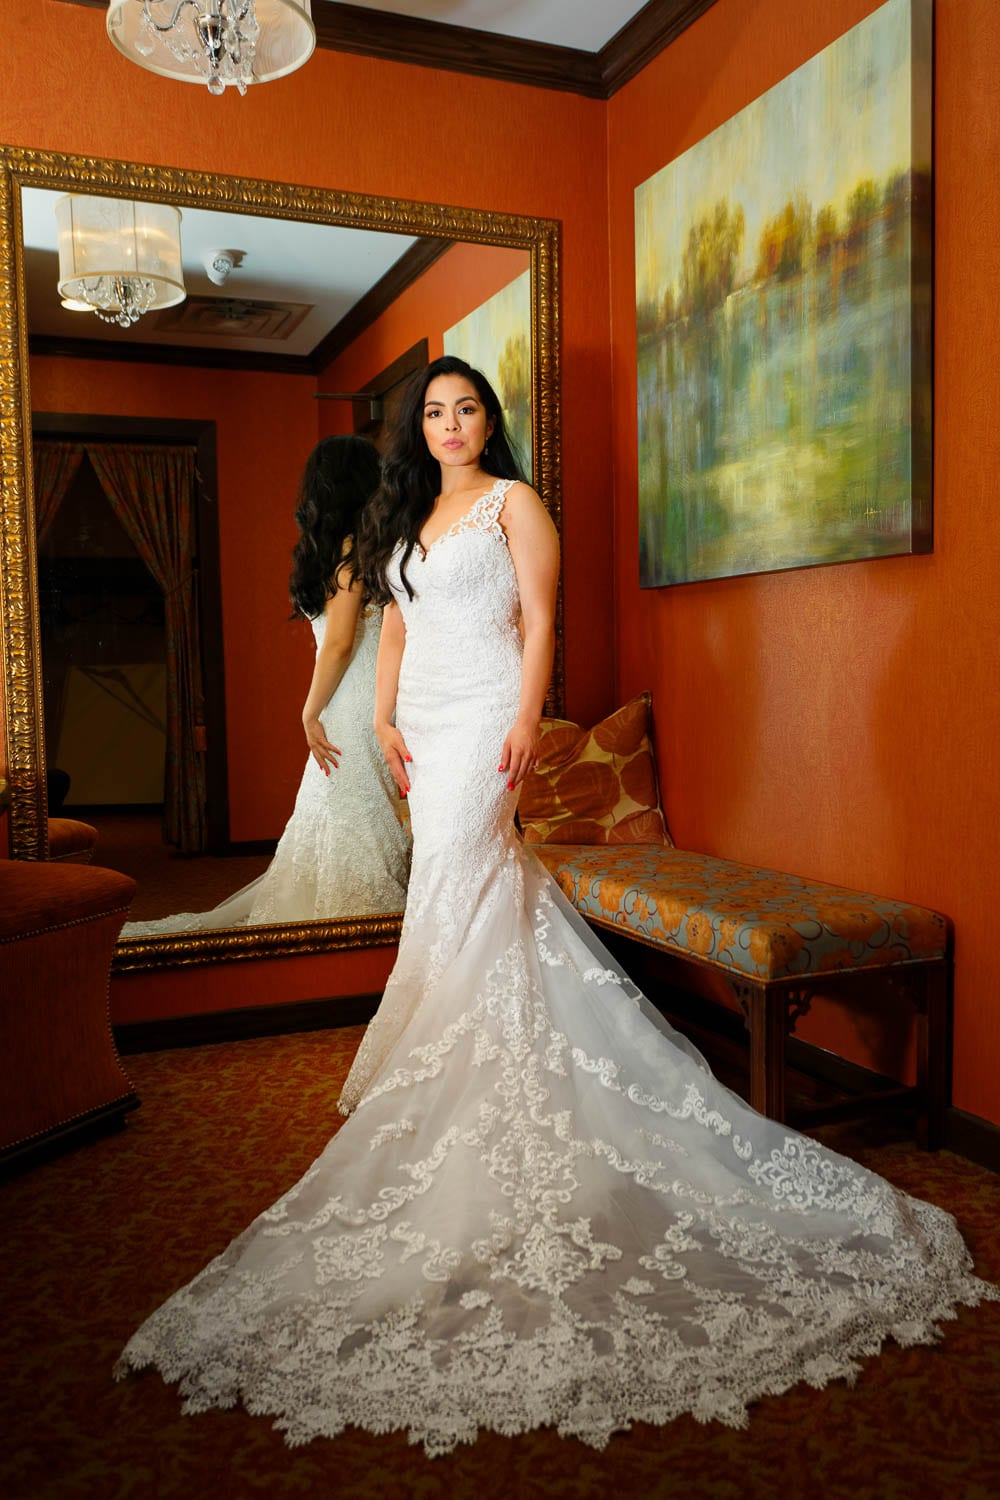 Stunning bride and dress with Elegance